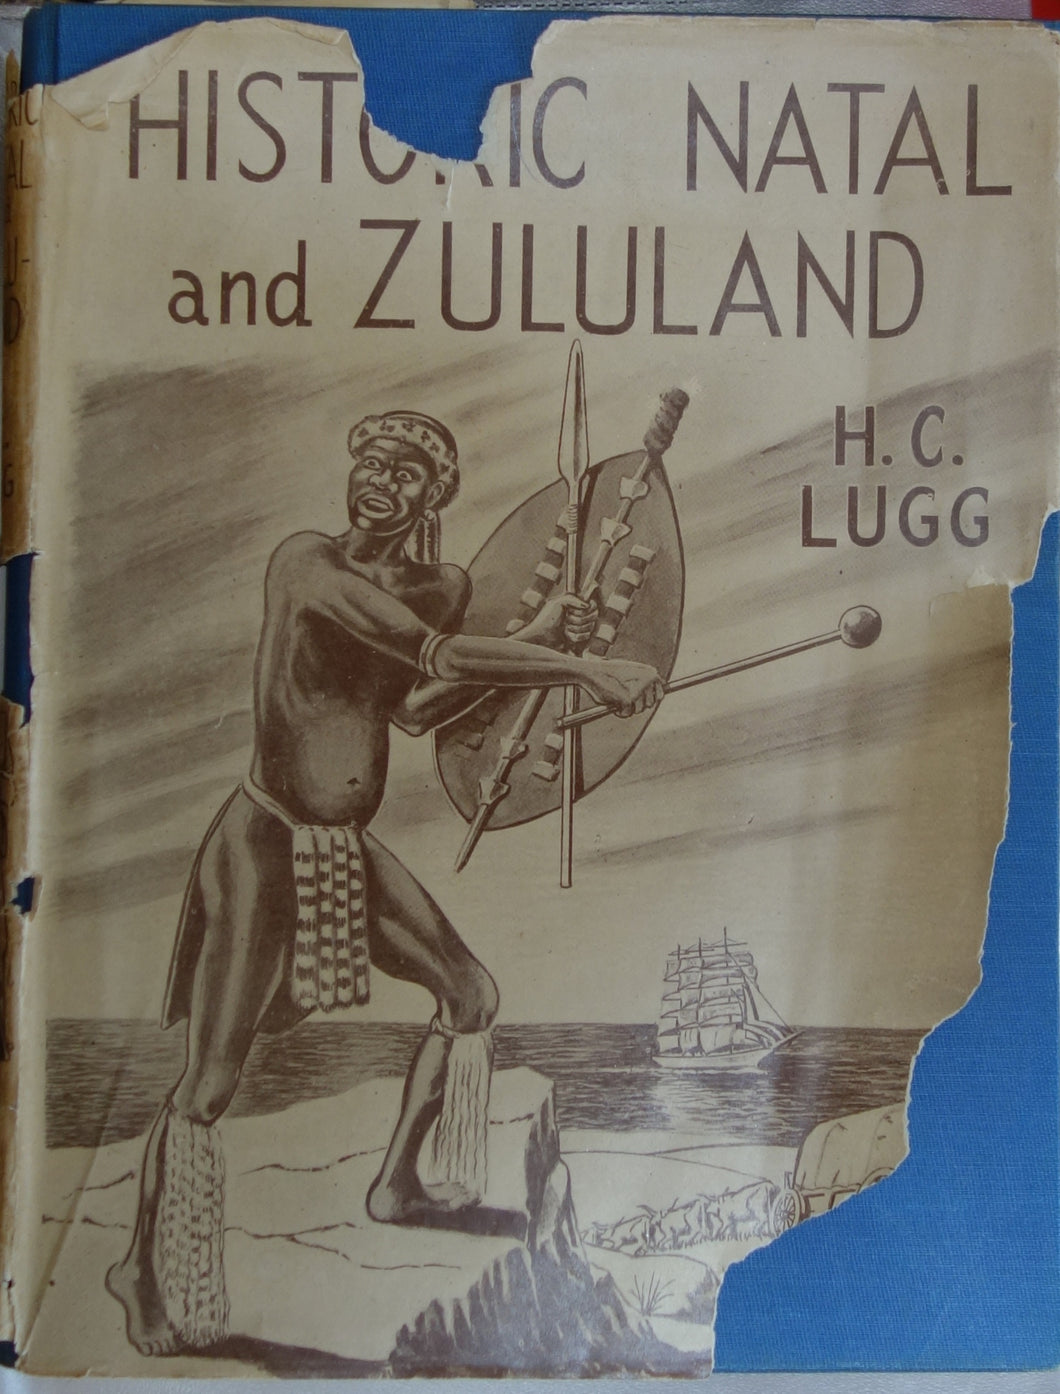 'HISTORIC NATAL AND ZULULAND' by H.C. Lugg